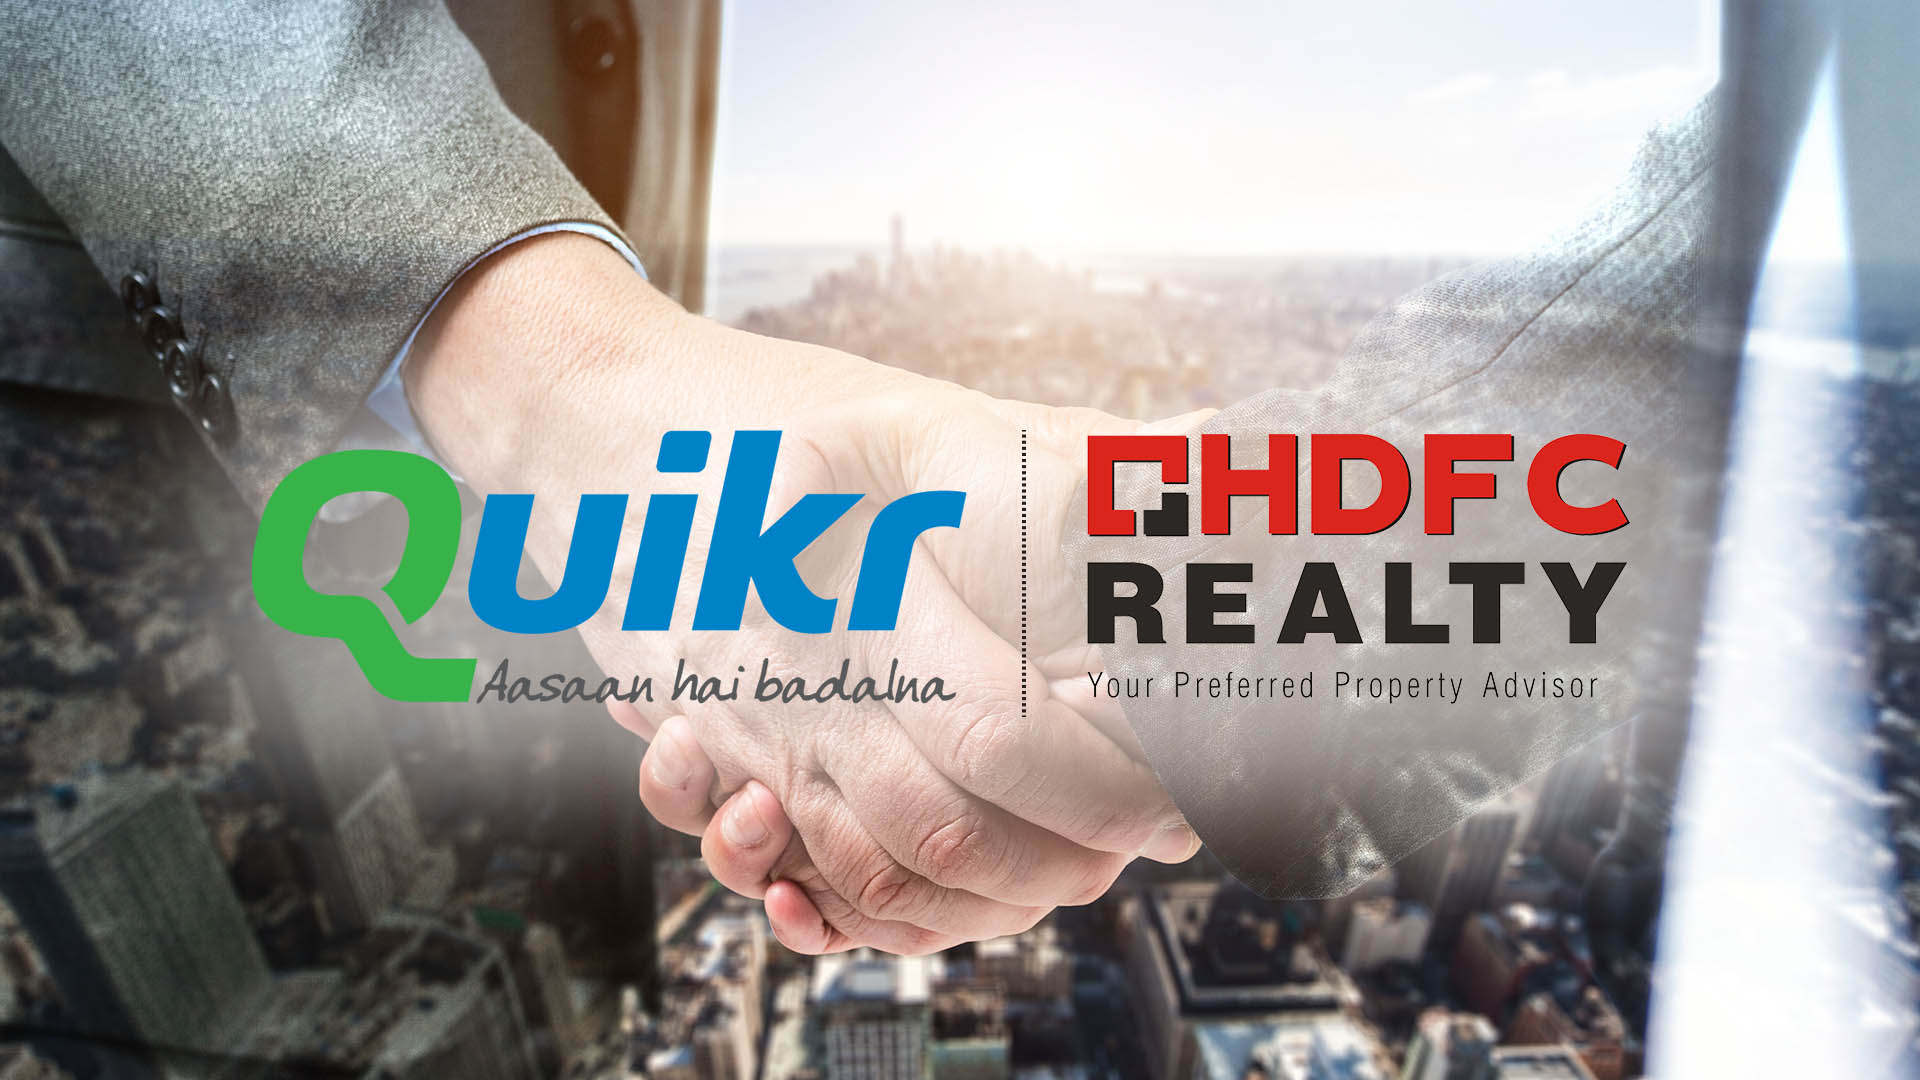 HDFC and Quikr Make A Deal